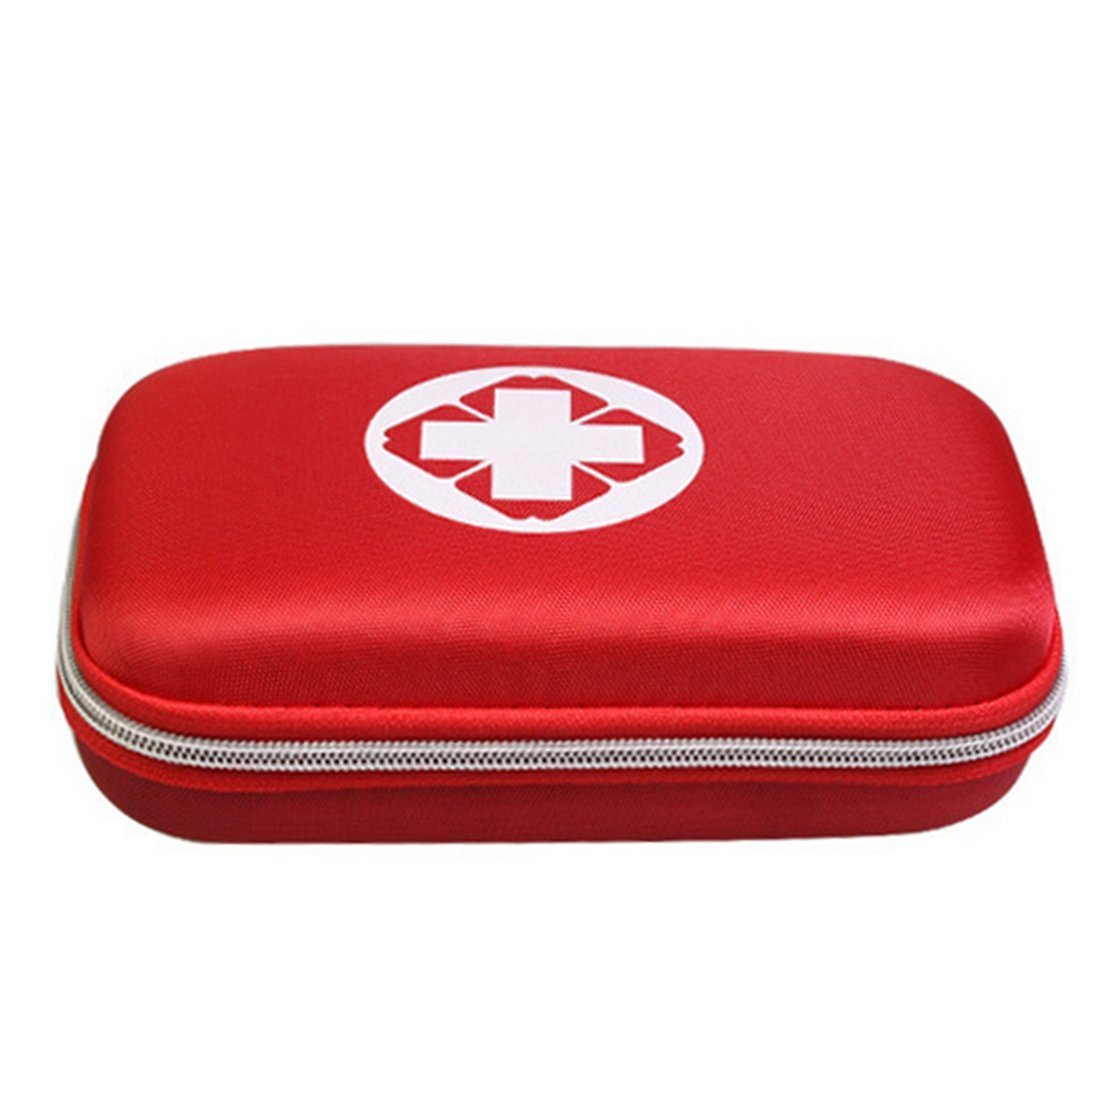 Lanticy First Aid Pouch Box, Empty Waterproof Medicine Storage Bag Portable Medical Package Emergency Medical Kit Survival Medicine Pills Pocket Container Perfect for Home Car Travel Outdoor (Red) by Lanticy